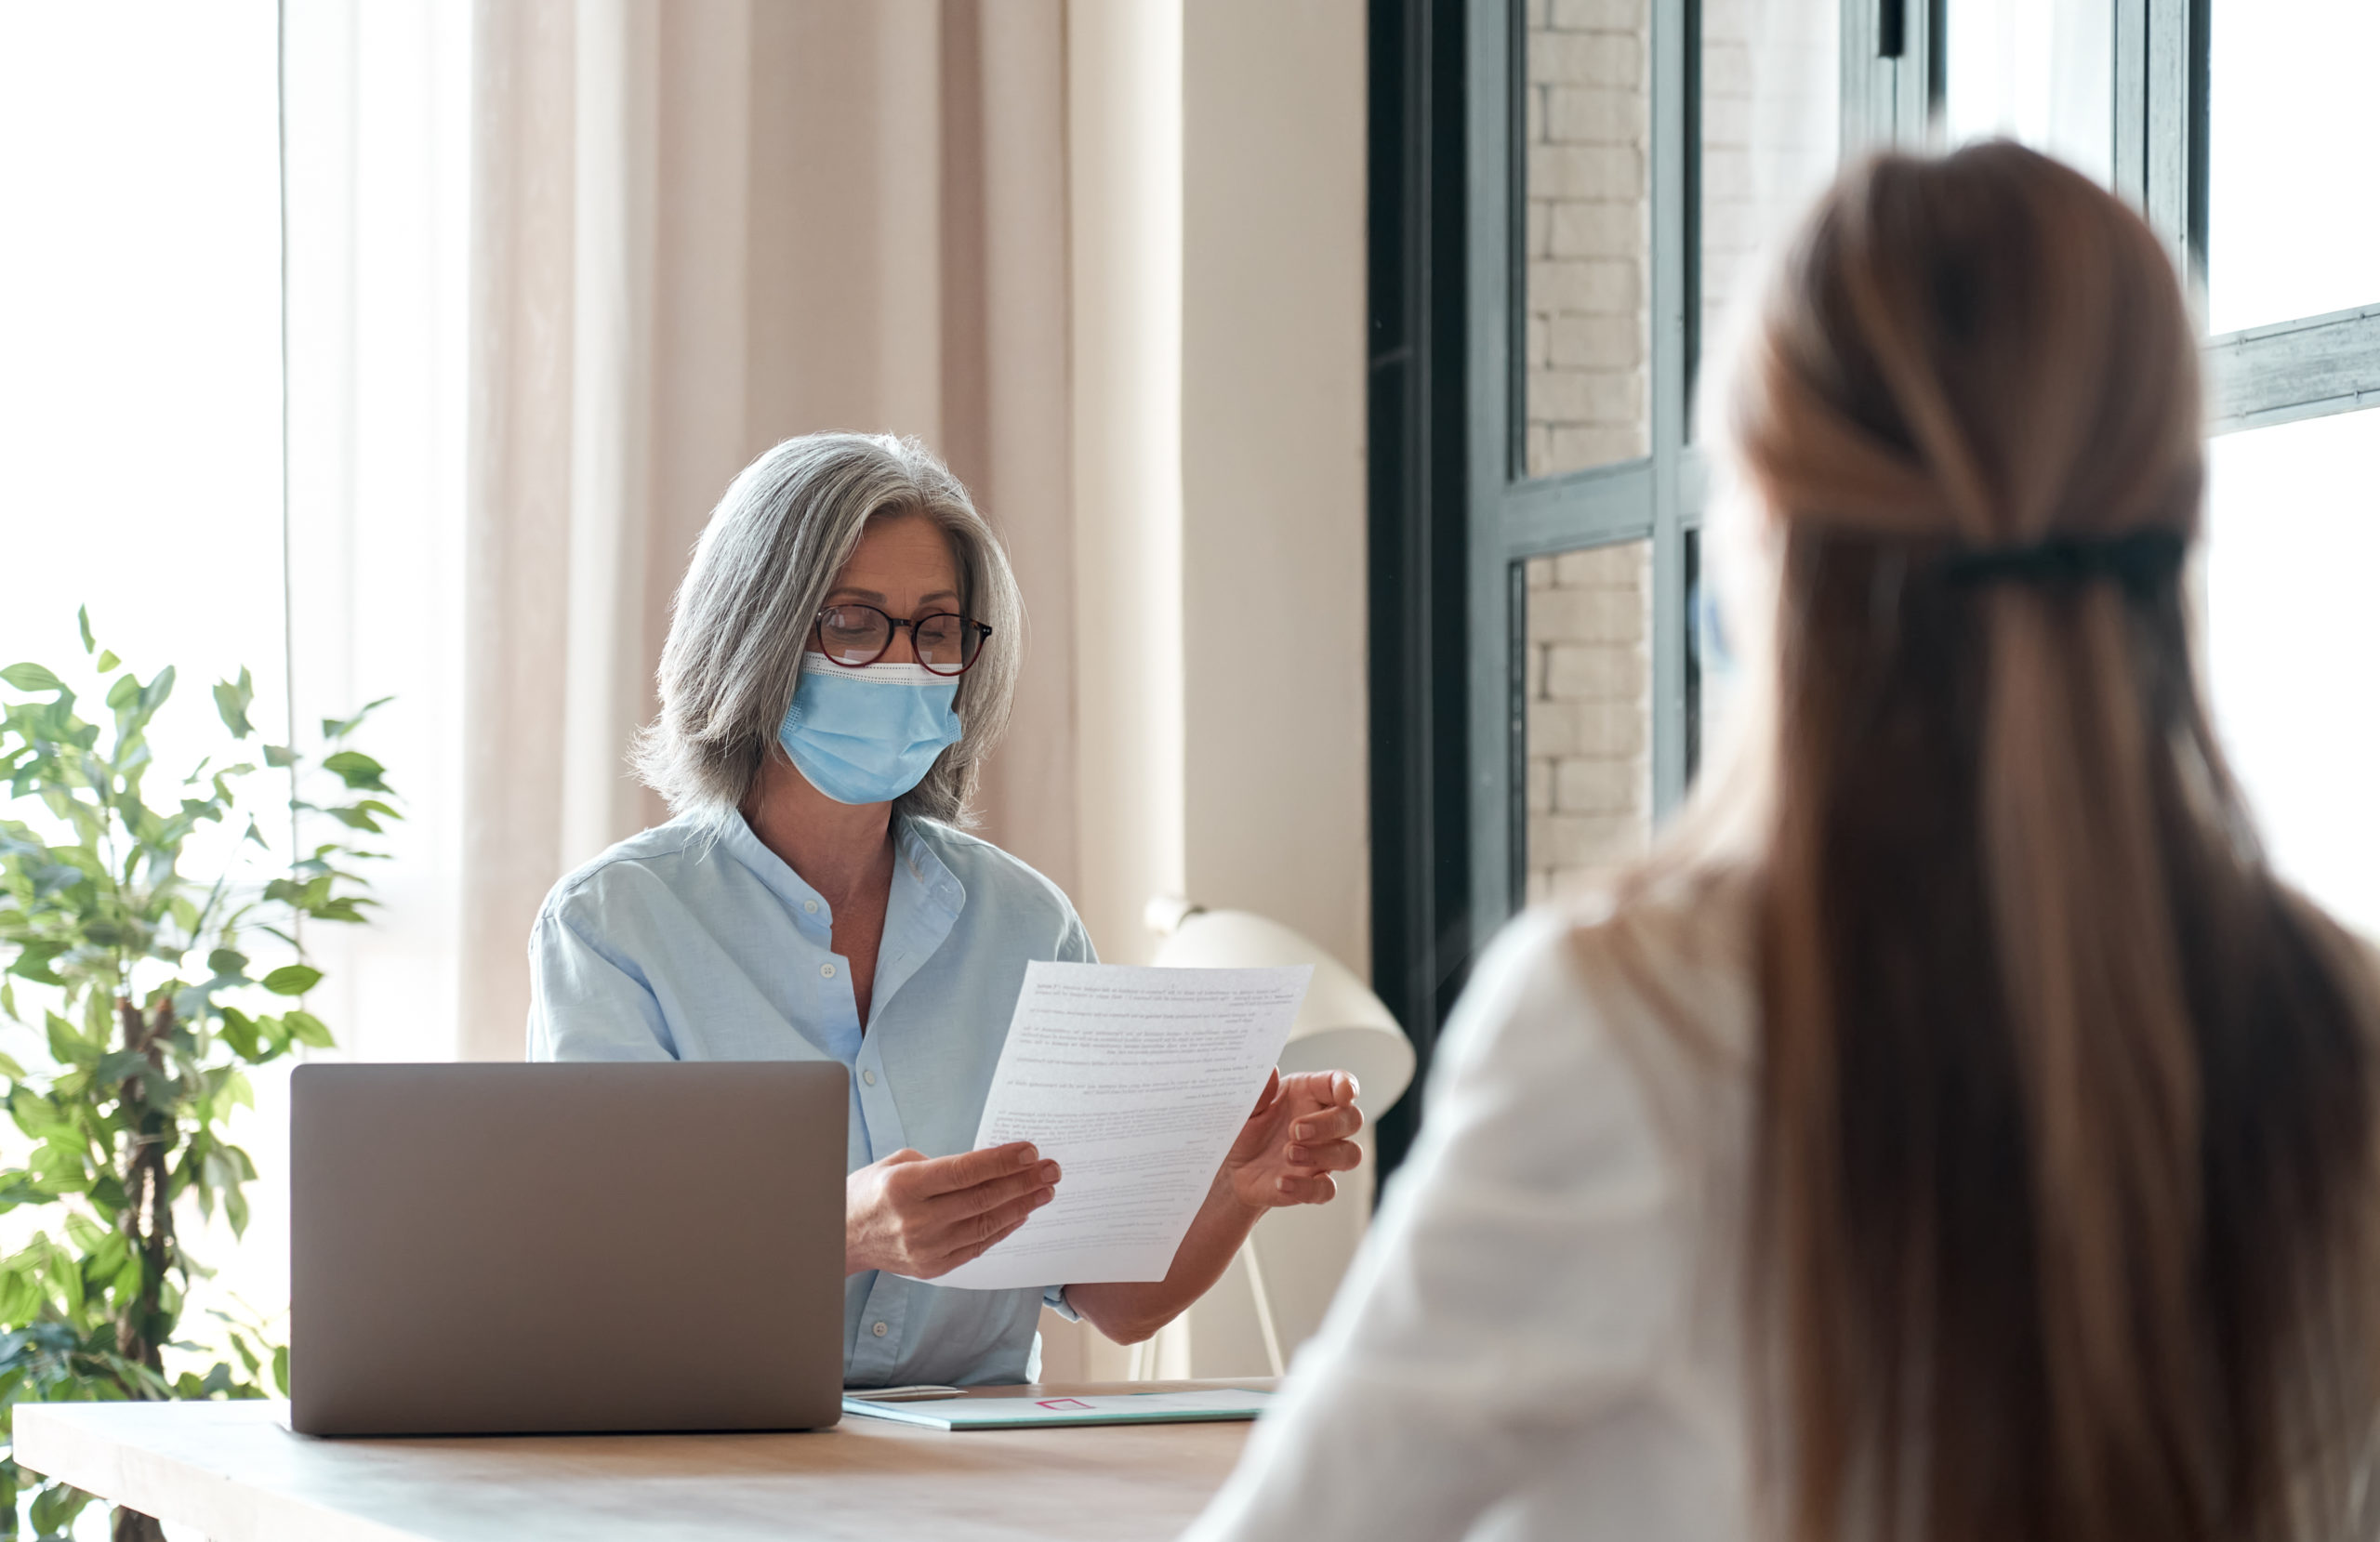 Old hr manager wearing face mask checking female applicant cv at job interview.